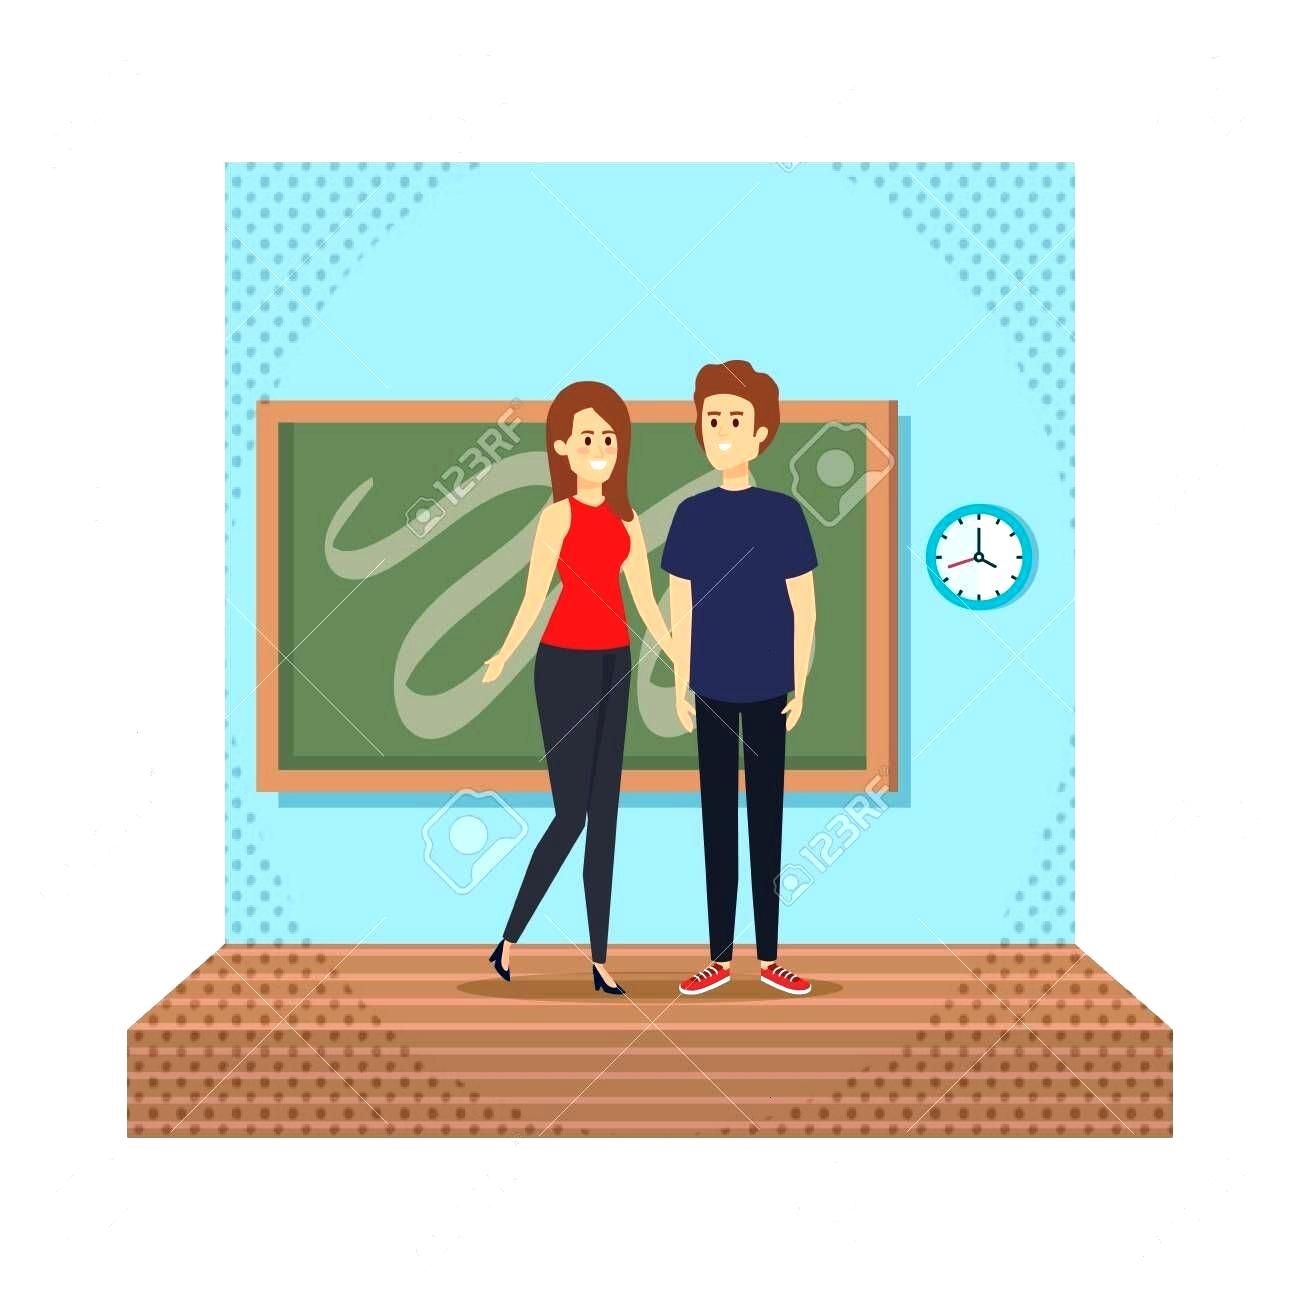 young teachers couple with chalkboard in classroom scene vector illustration design Illustration ,